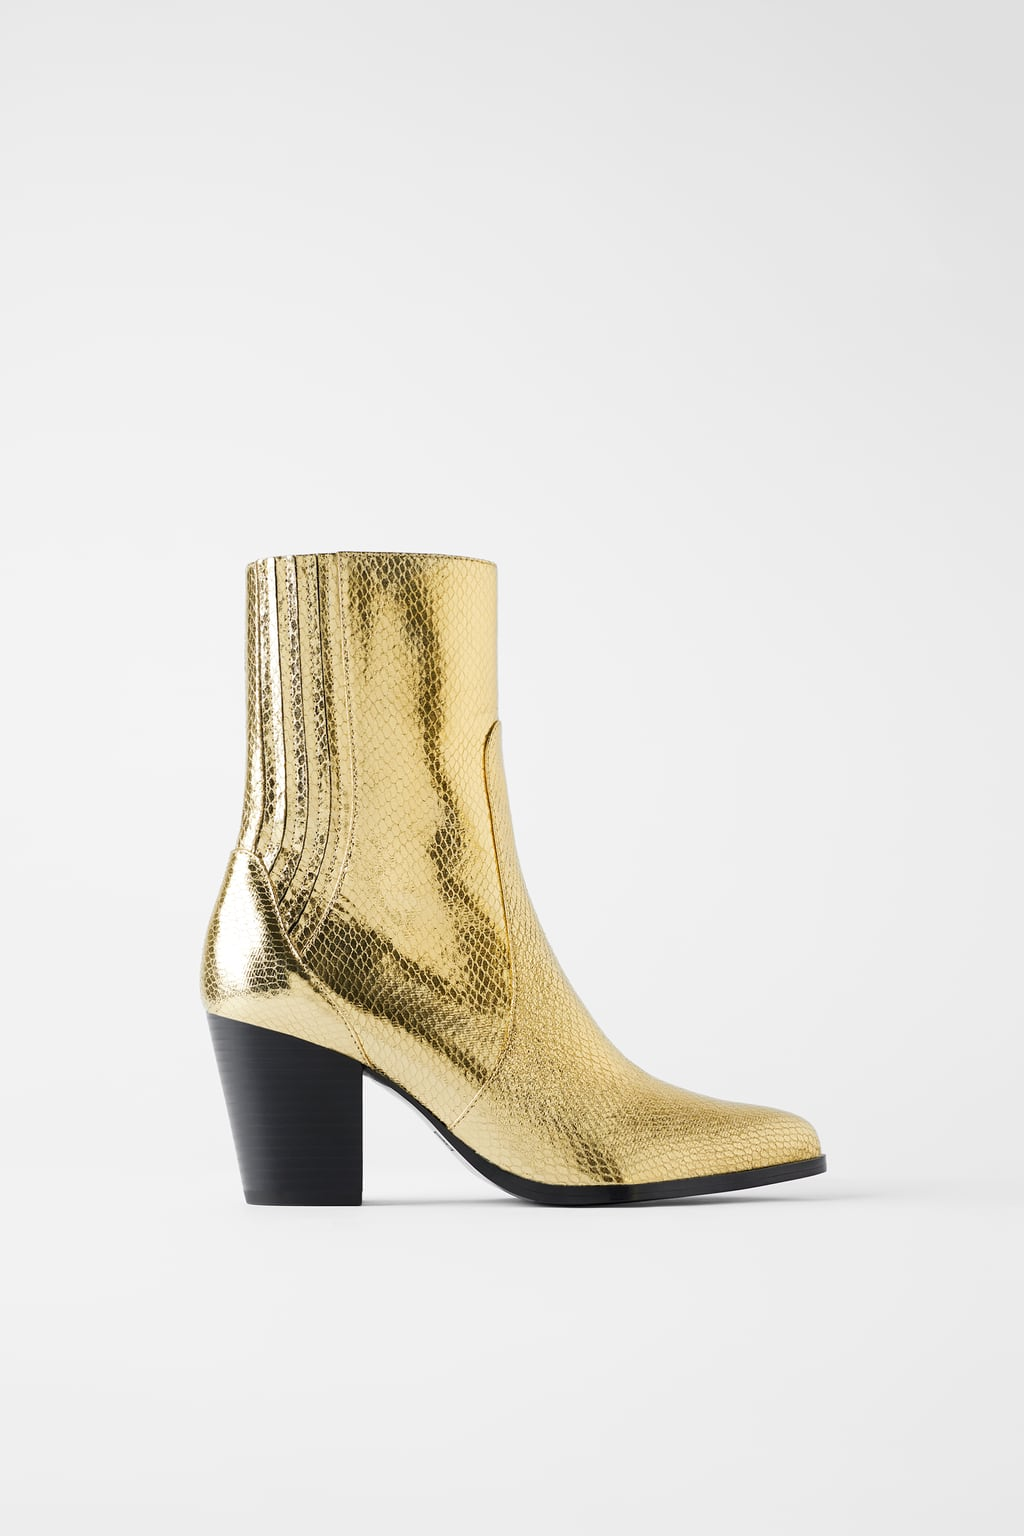 Zara Metallic Animal Print Heeled Ankle Boots £59.99